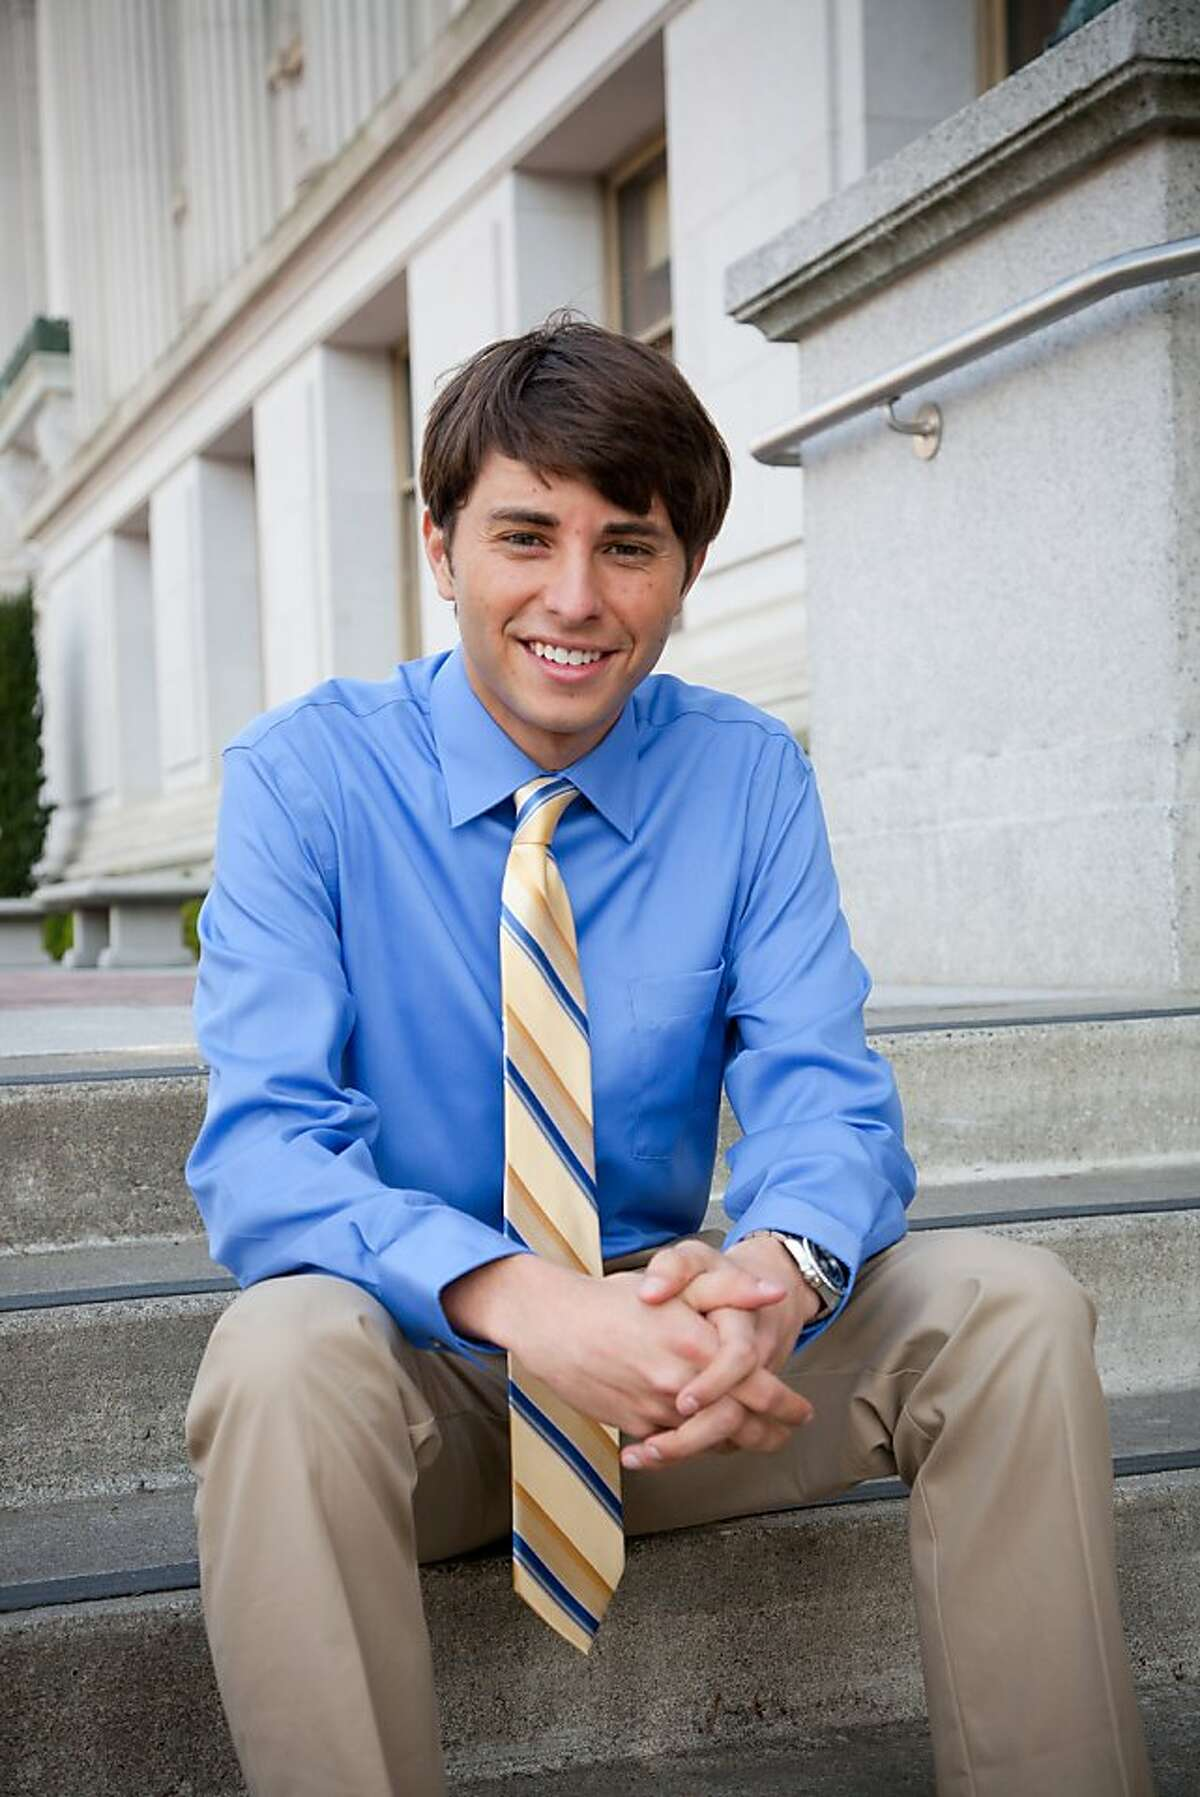 Nicholas Castle, 23, of Brentwood died Thursday February 7, 2013 while volunteering with the Peace Corps in China.